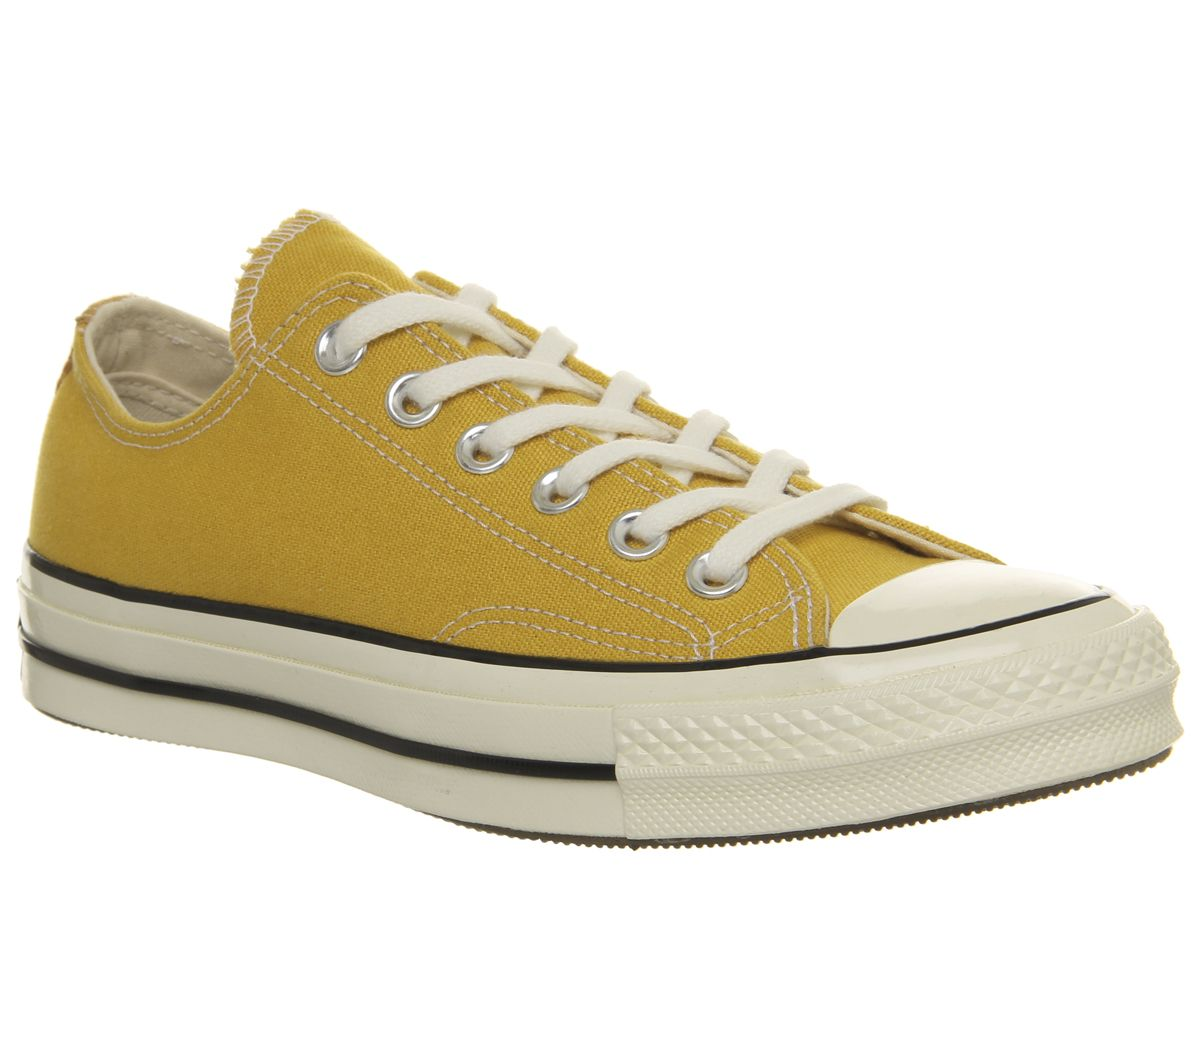 0607f47b5bb0 Converse All Star Ox 70 s Trainers Sunflower Black White - His trainers